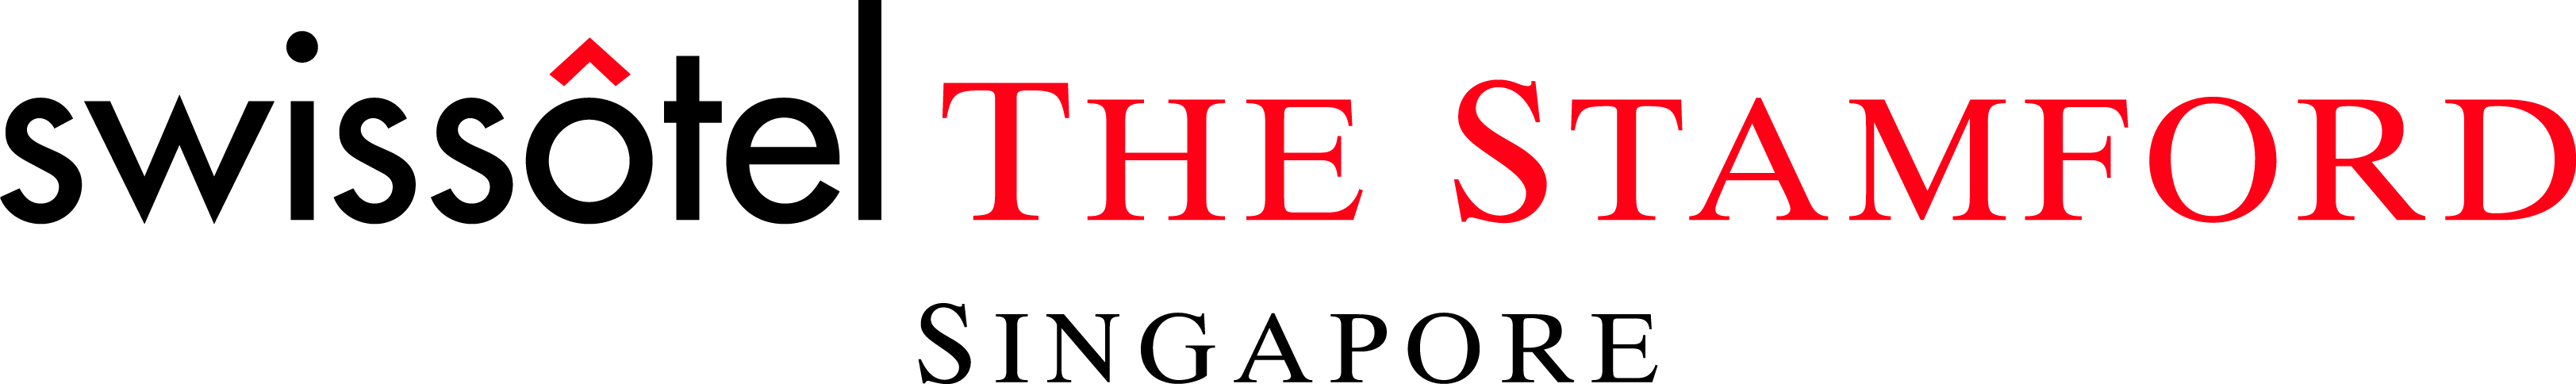 Swissotel_The_Stamford_logo_Color